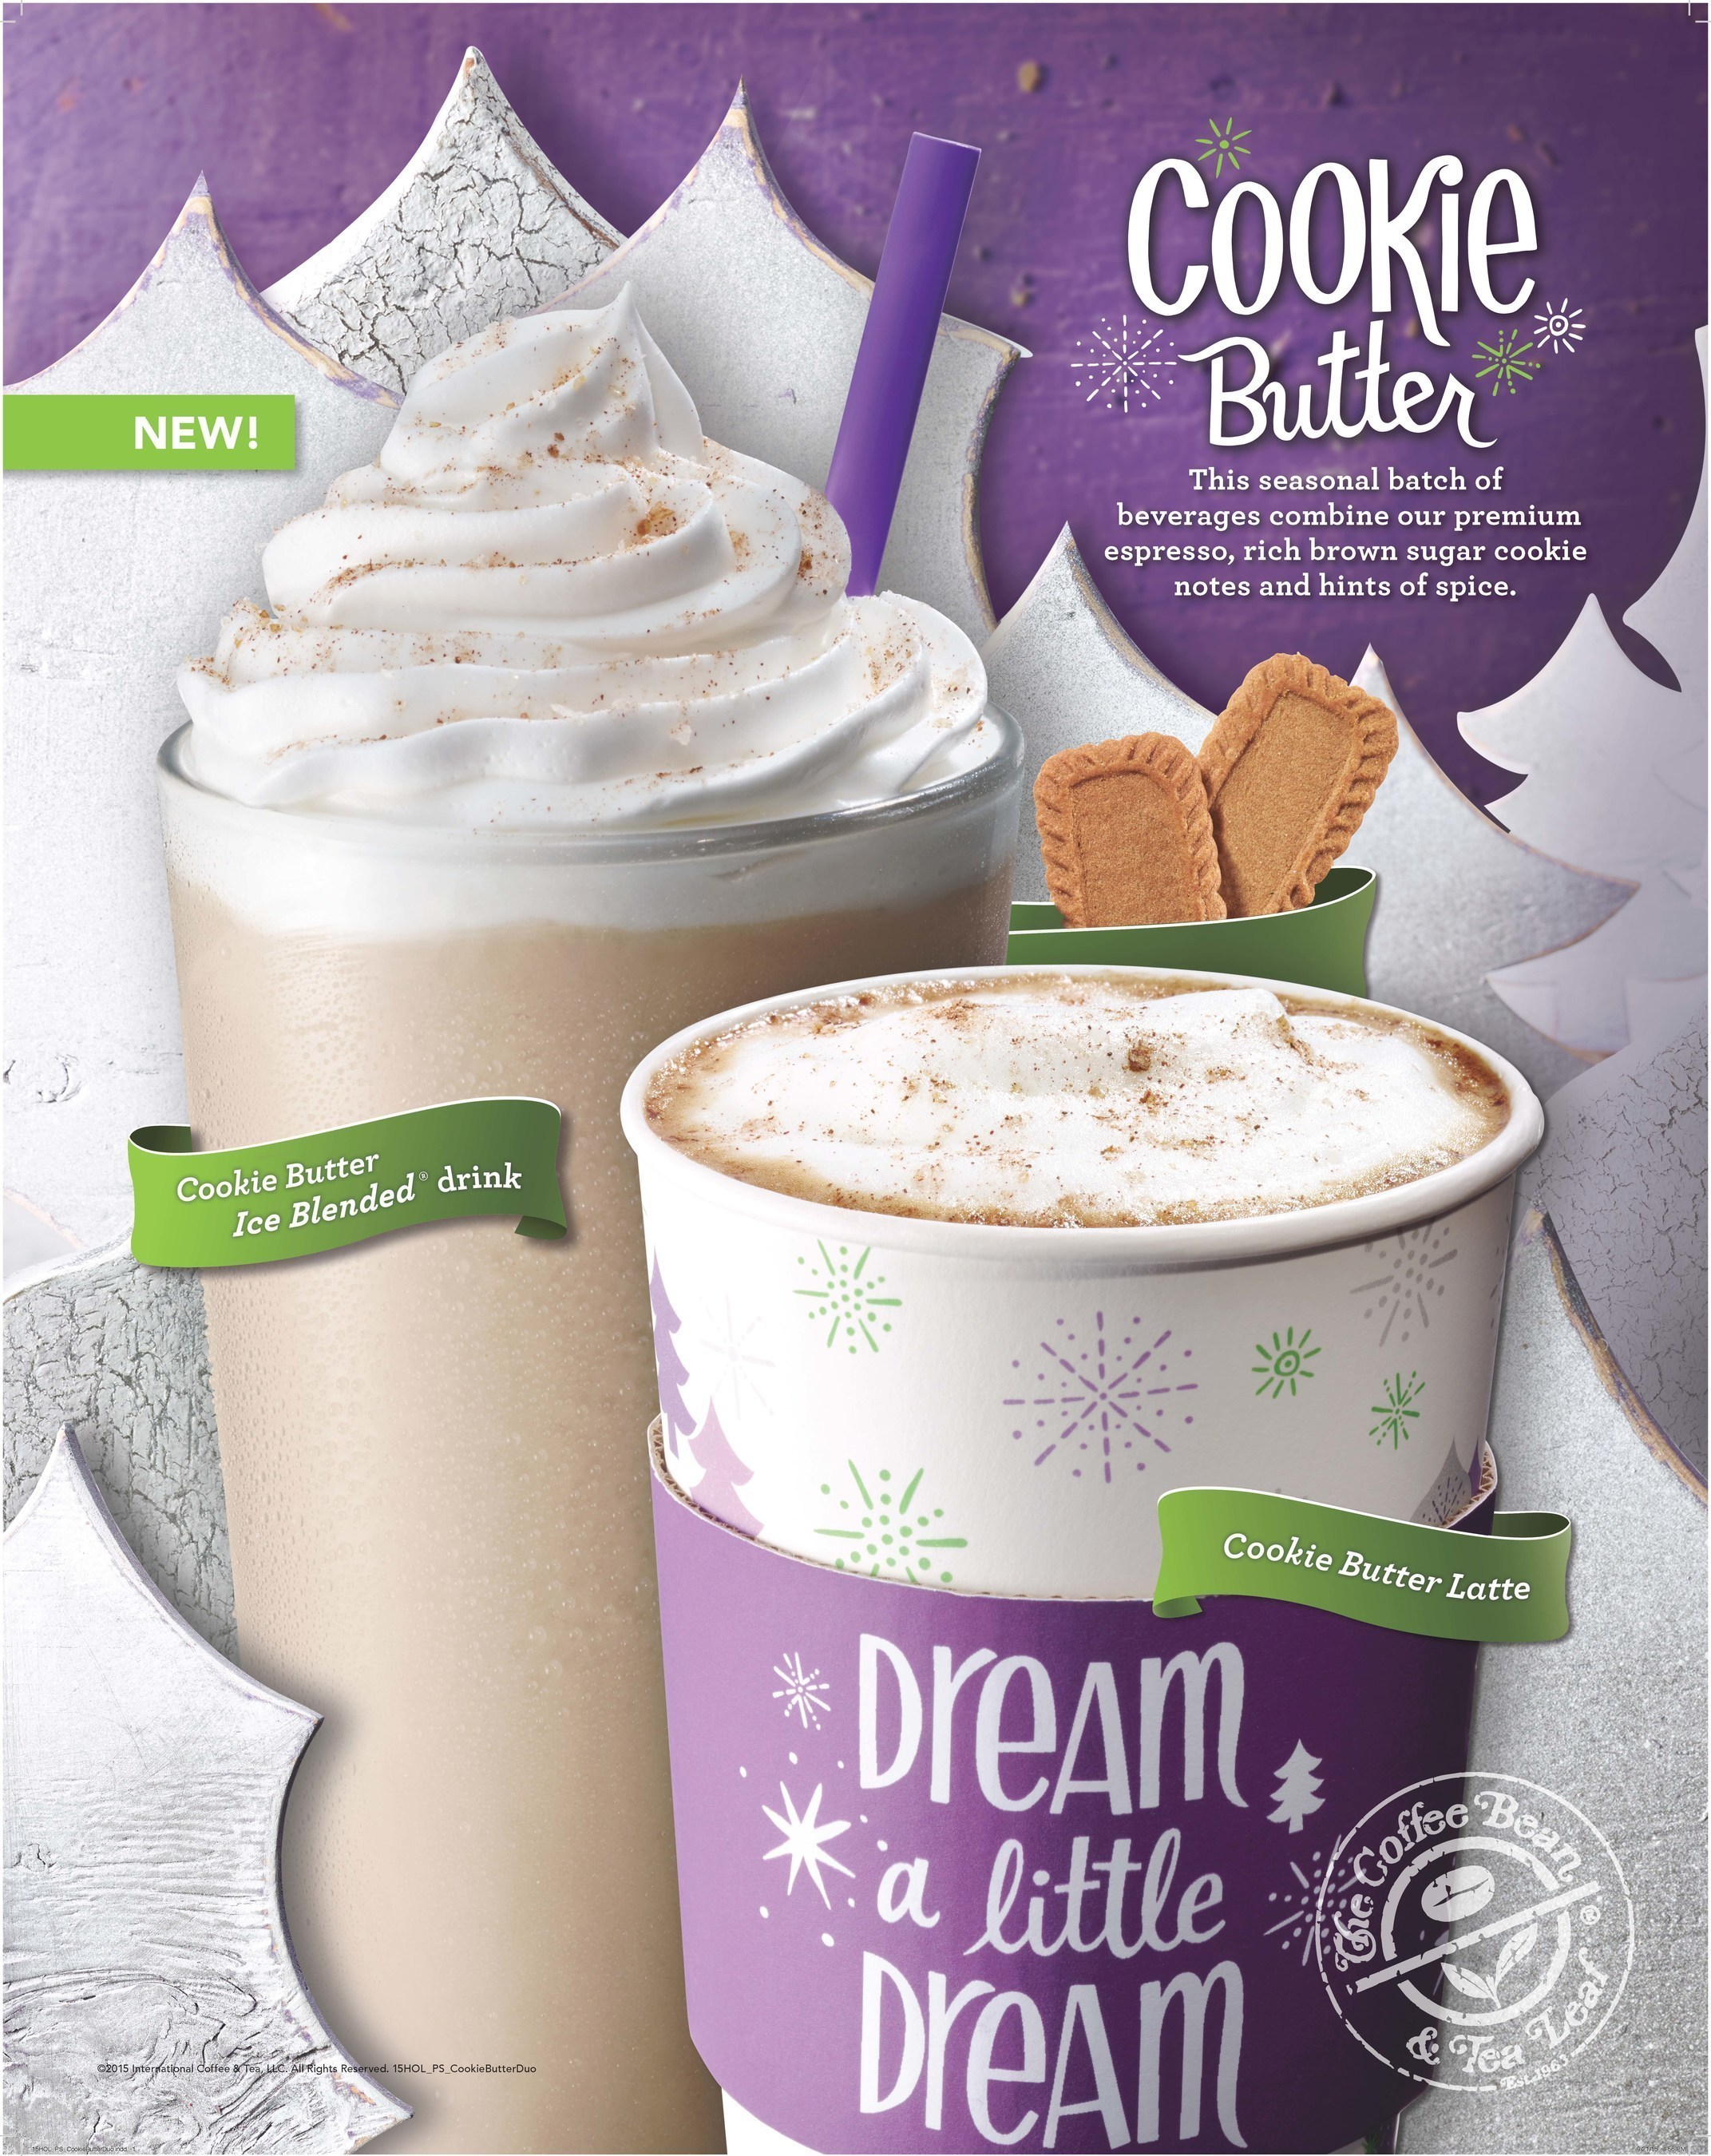 The Coffee Bean & Tea Leaf® Unwraps New Cookie Butter Beverages For